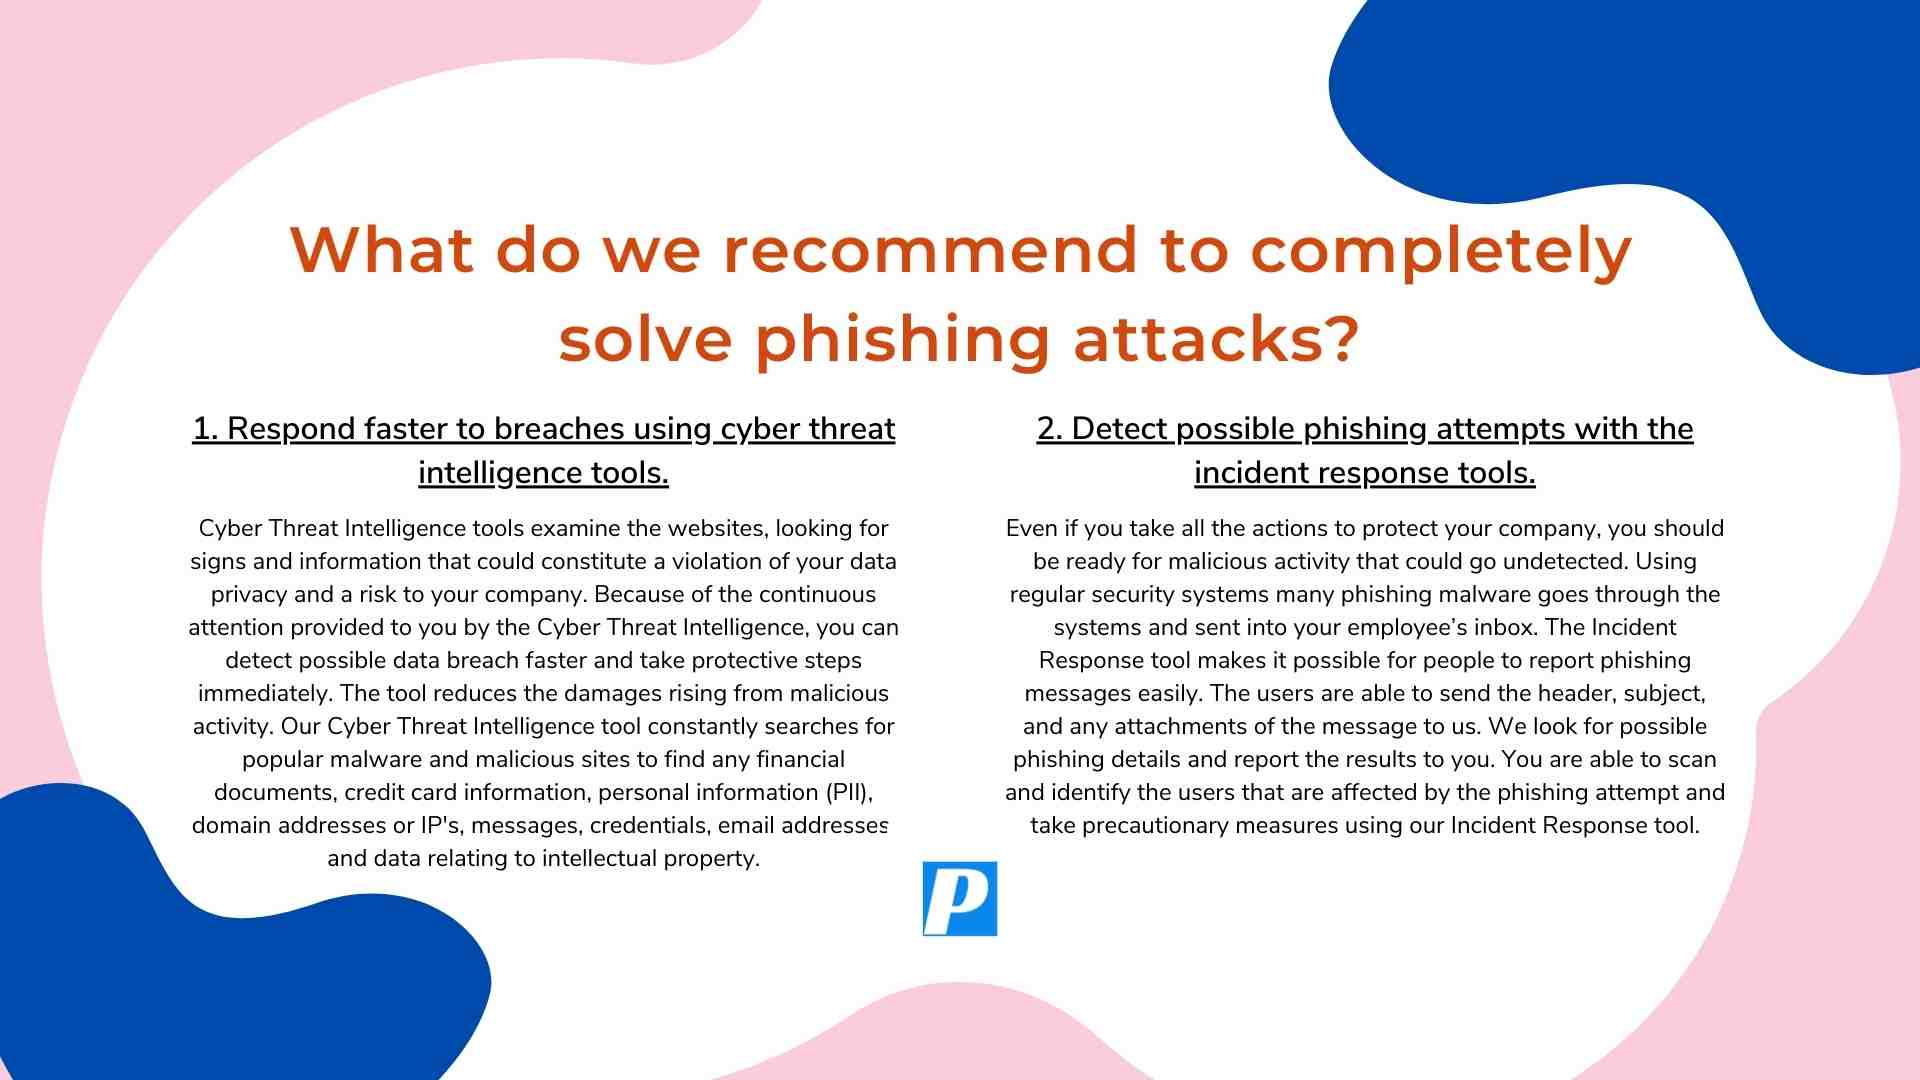 Approach to Completely Solve Phishing Attacks